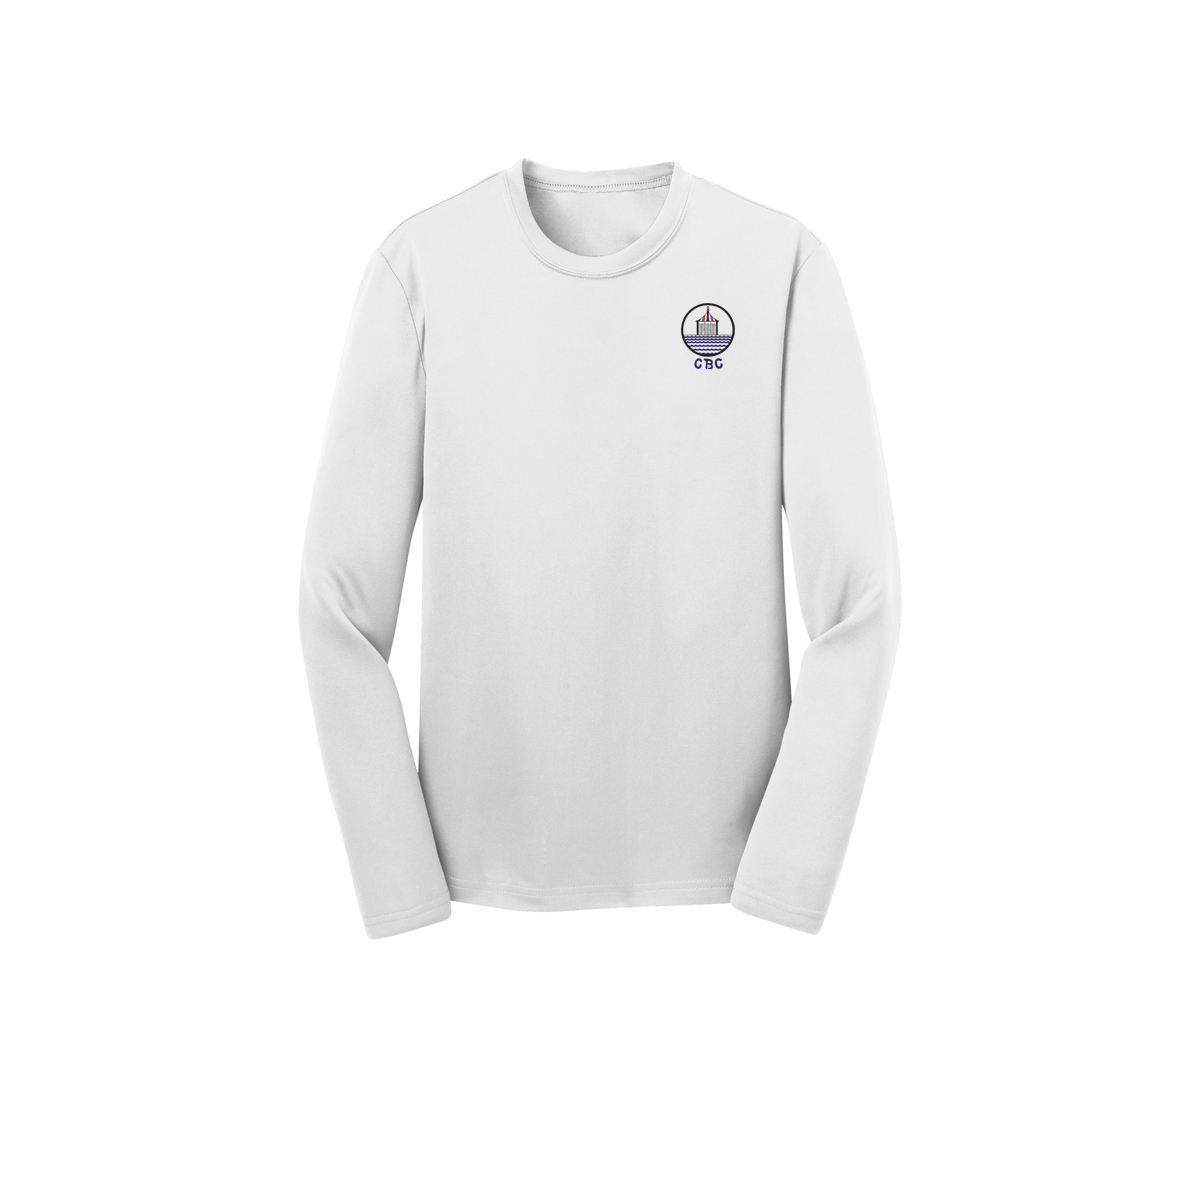 Chappaquiddick Beach Club - Youth Long Sleeve Tech Tee